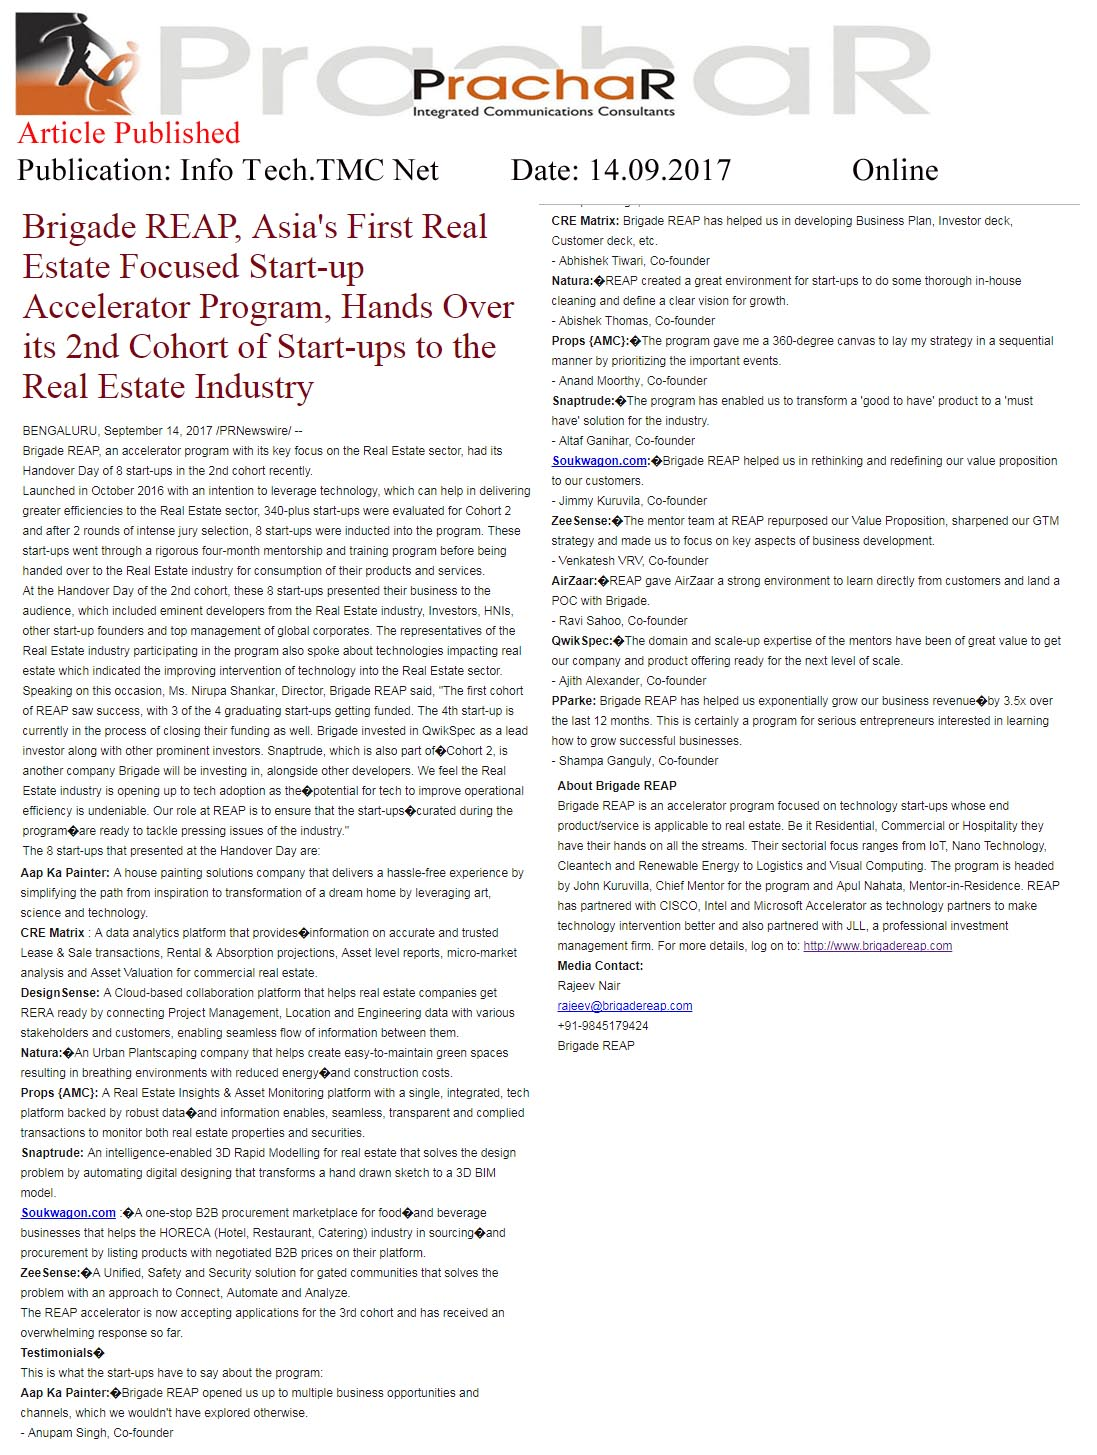 Brigade REAP, Asia's First Real Estate Focused Start-up Accelerator Program, Hands over its 2nd Cohort of Start-ups to the Real Estate Industry—Info Tech.TMC Net-Online